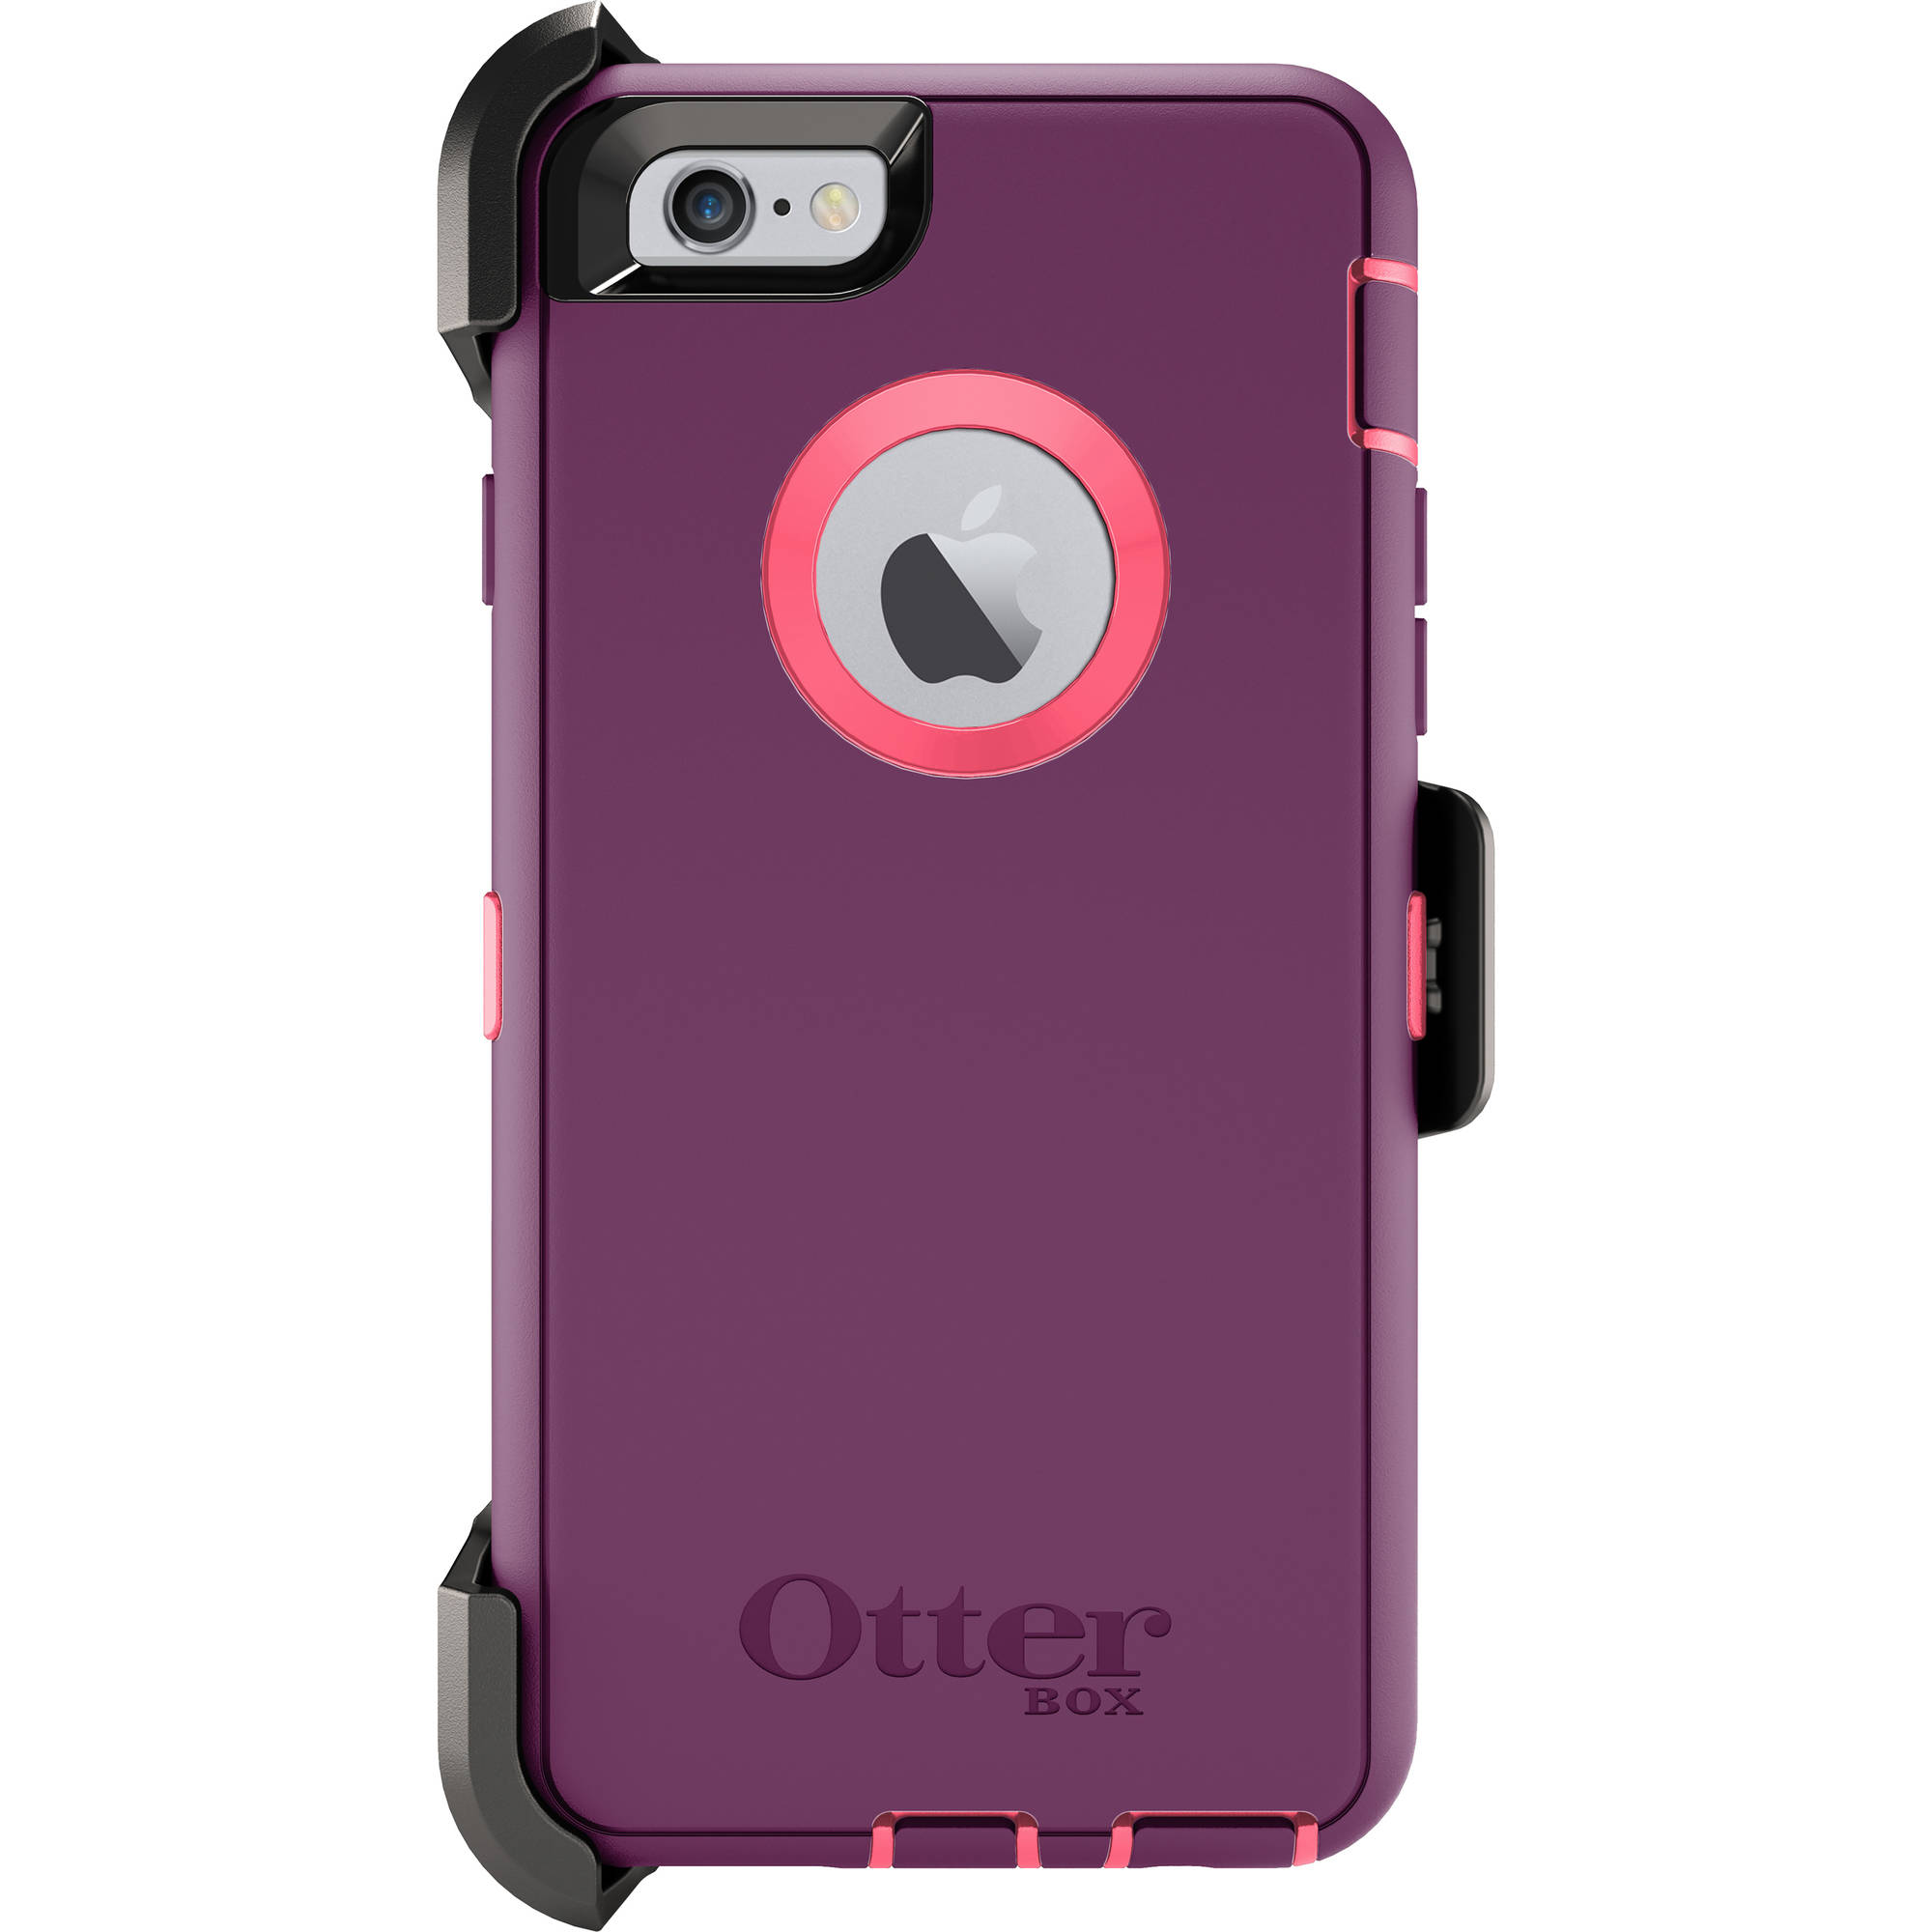 iPhone 6 Otterbox defender case for apple iphone 6, crushed damson